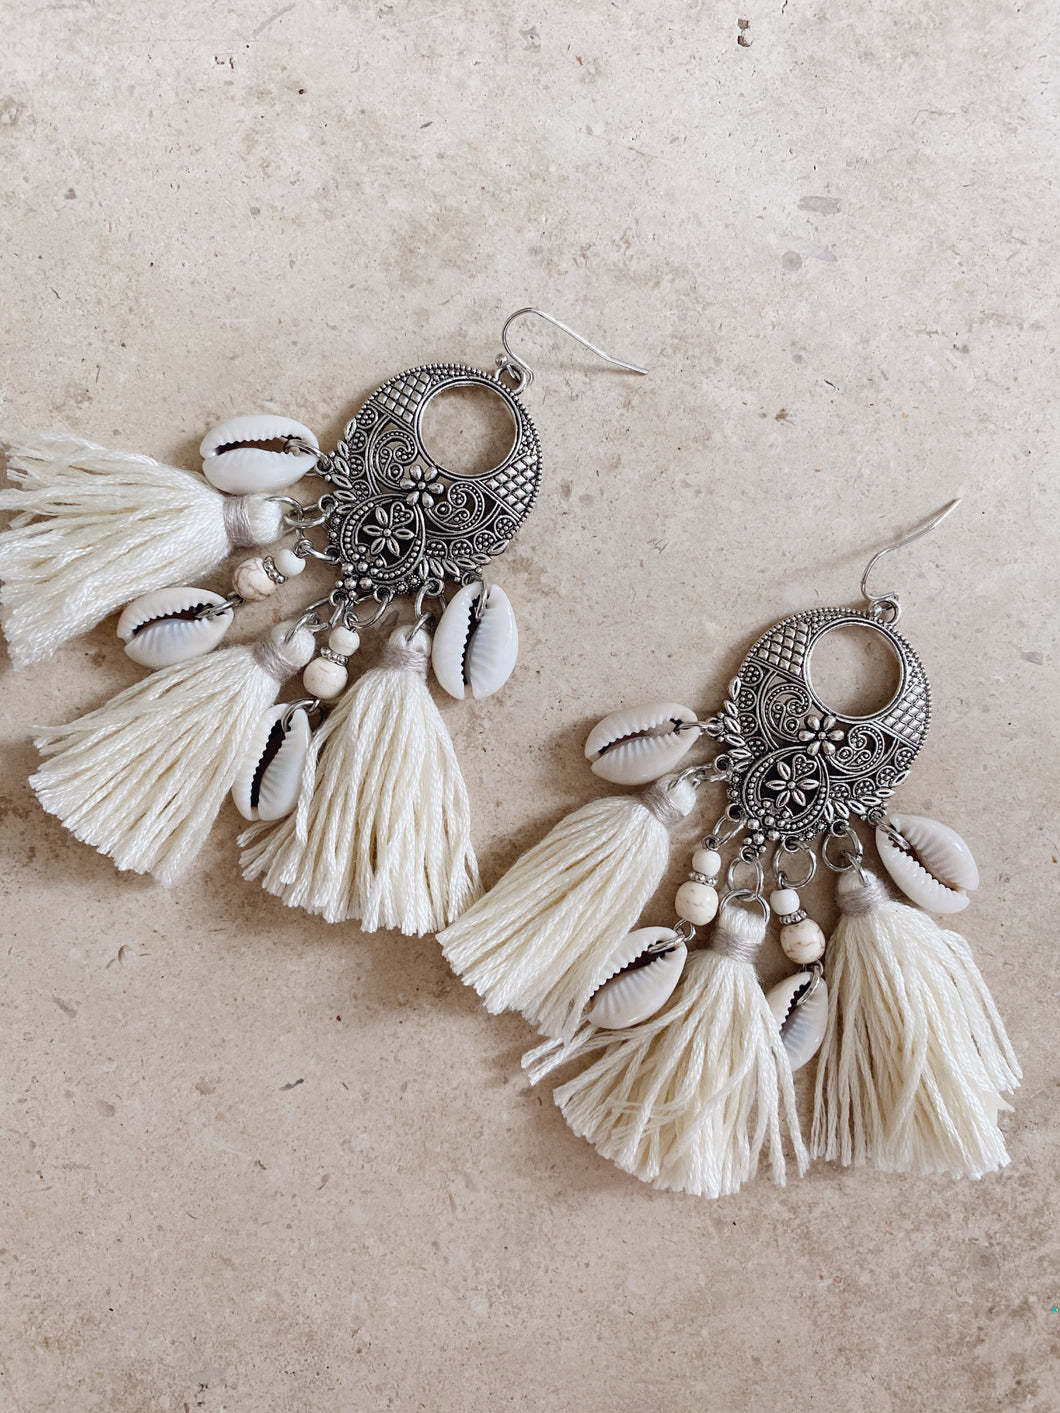 Boho Vibes earrings